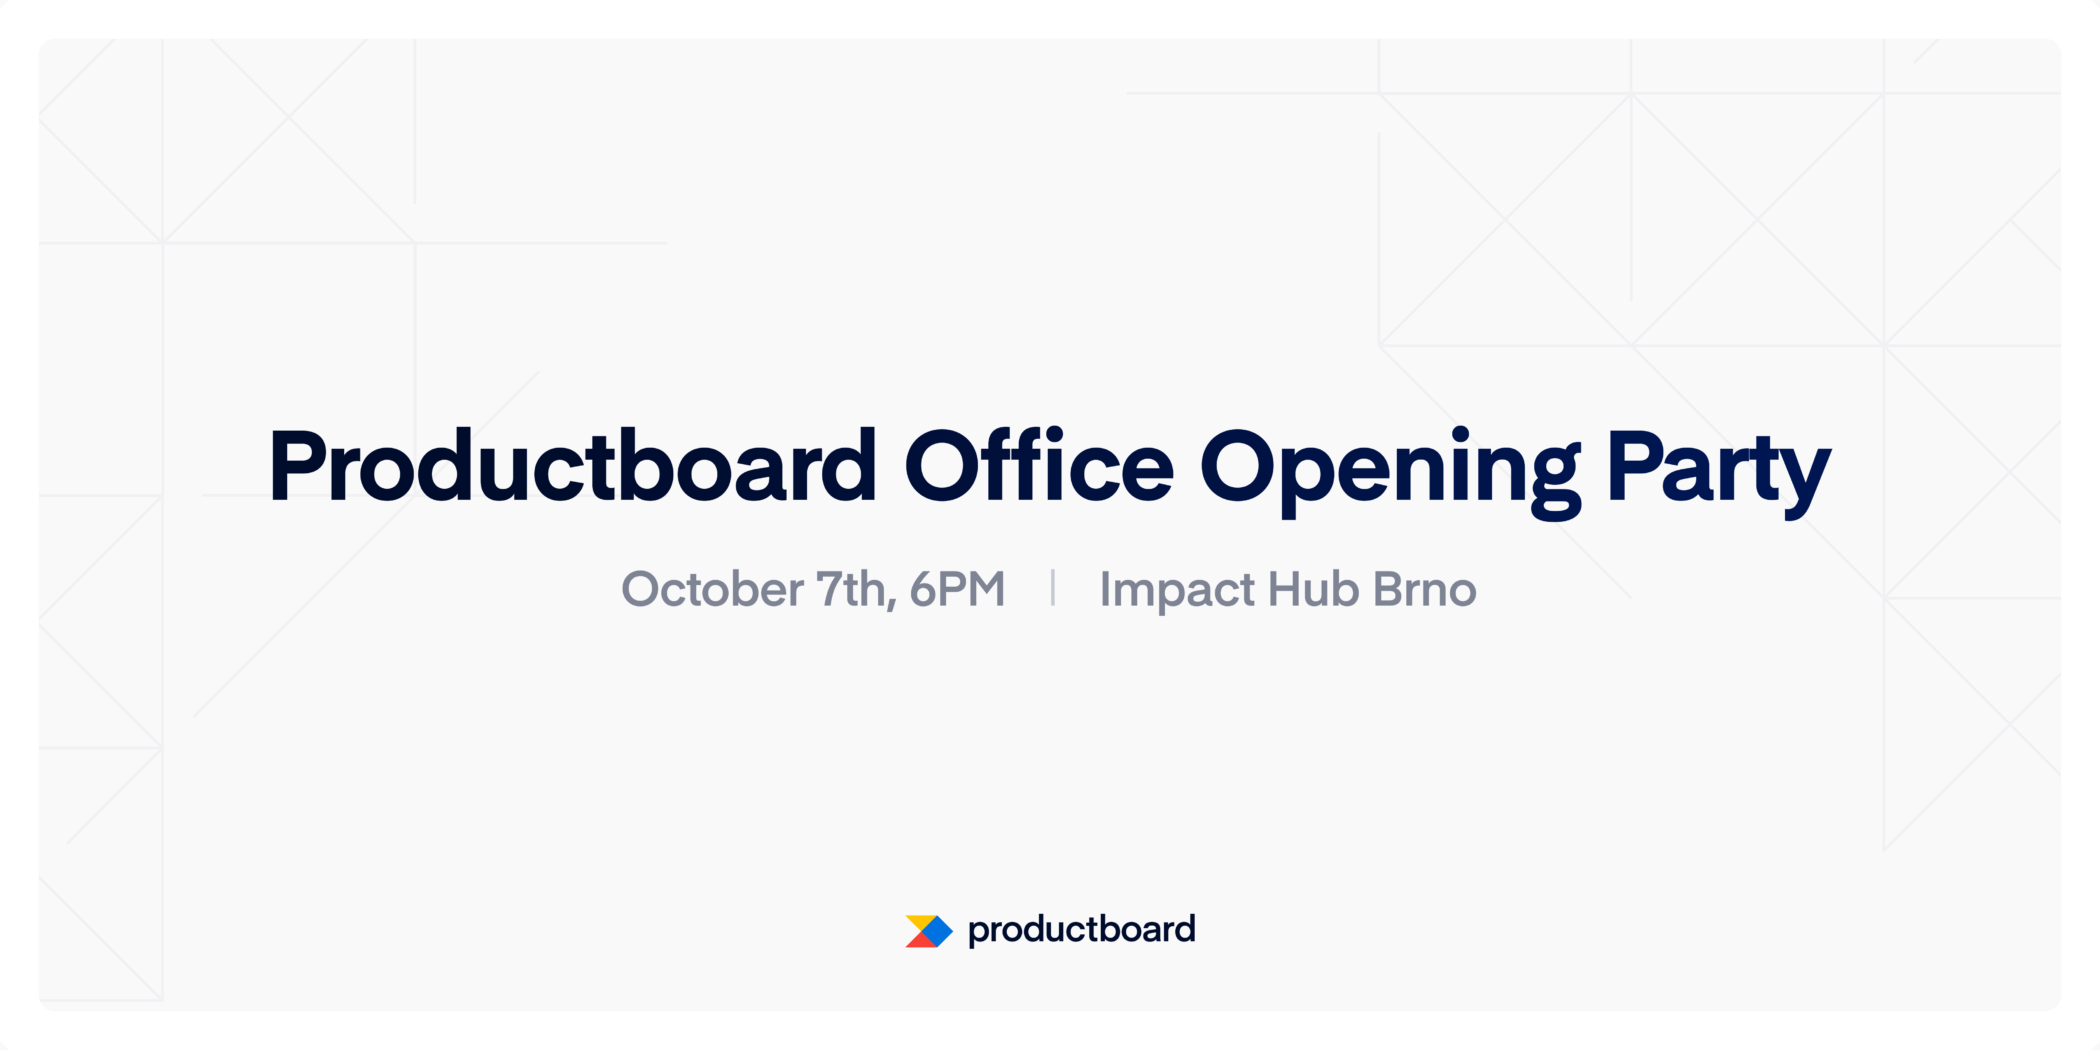 Productboard Office Opening Party in Brno